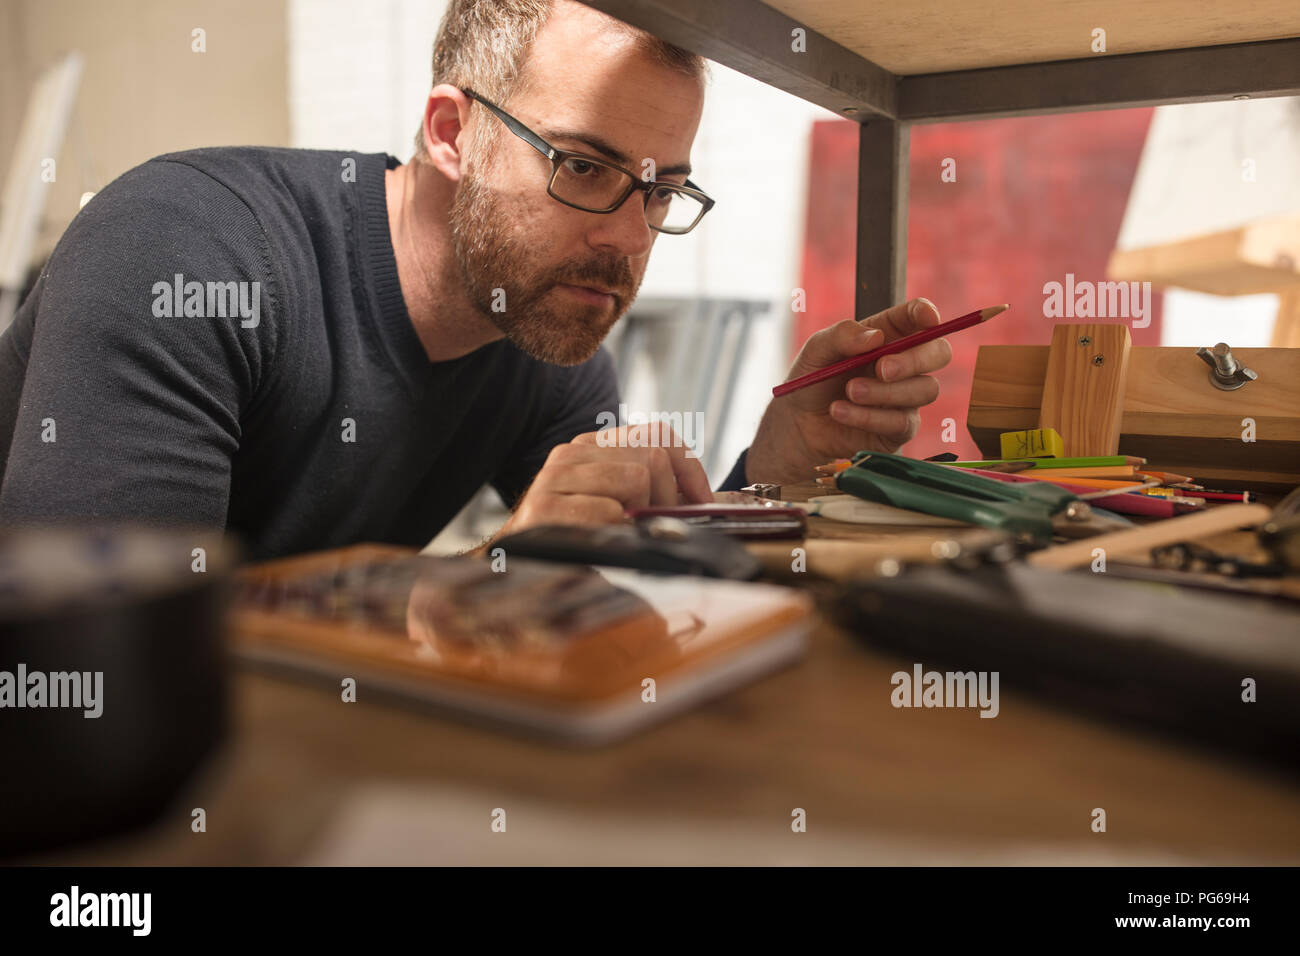 Man in artist's studio checking supplies - Stock Image